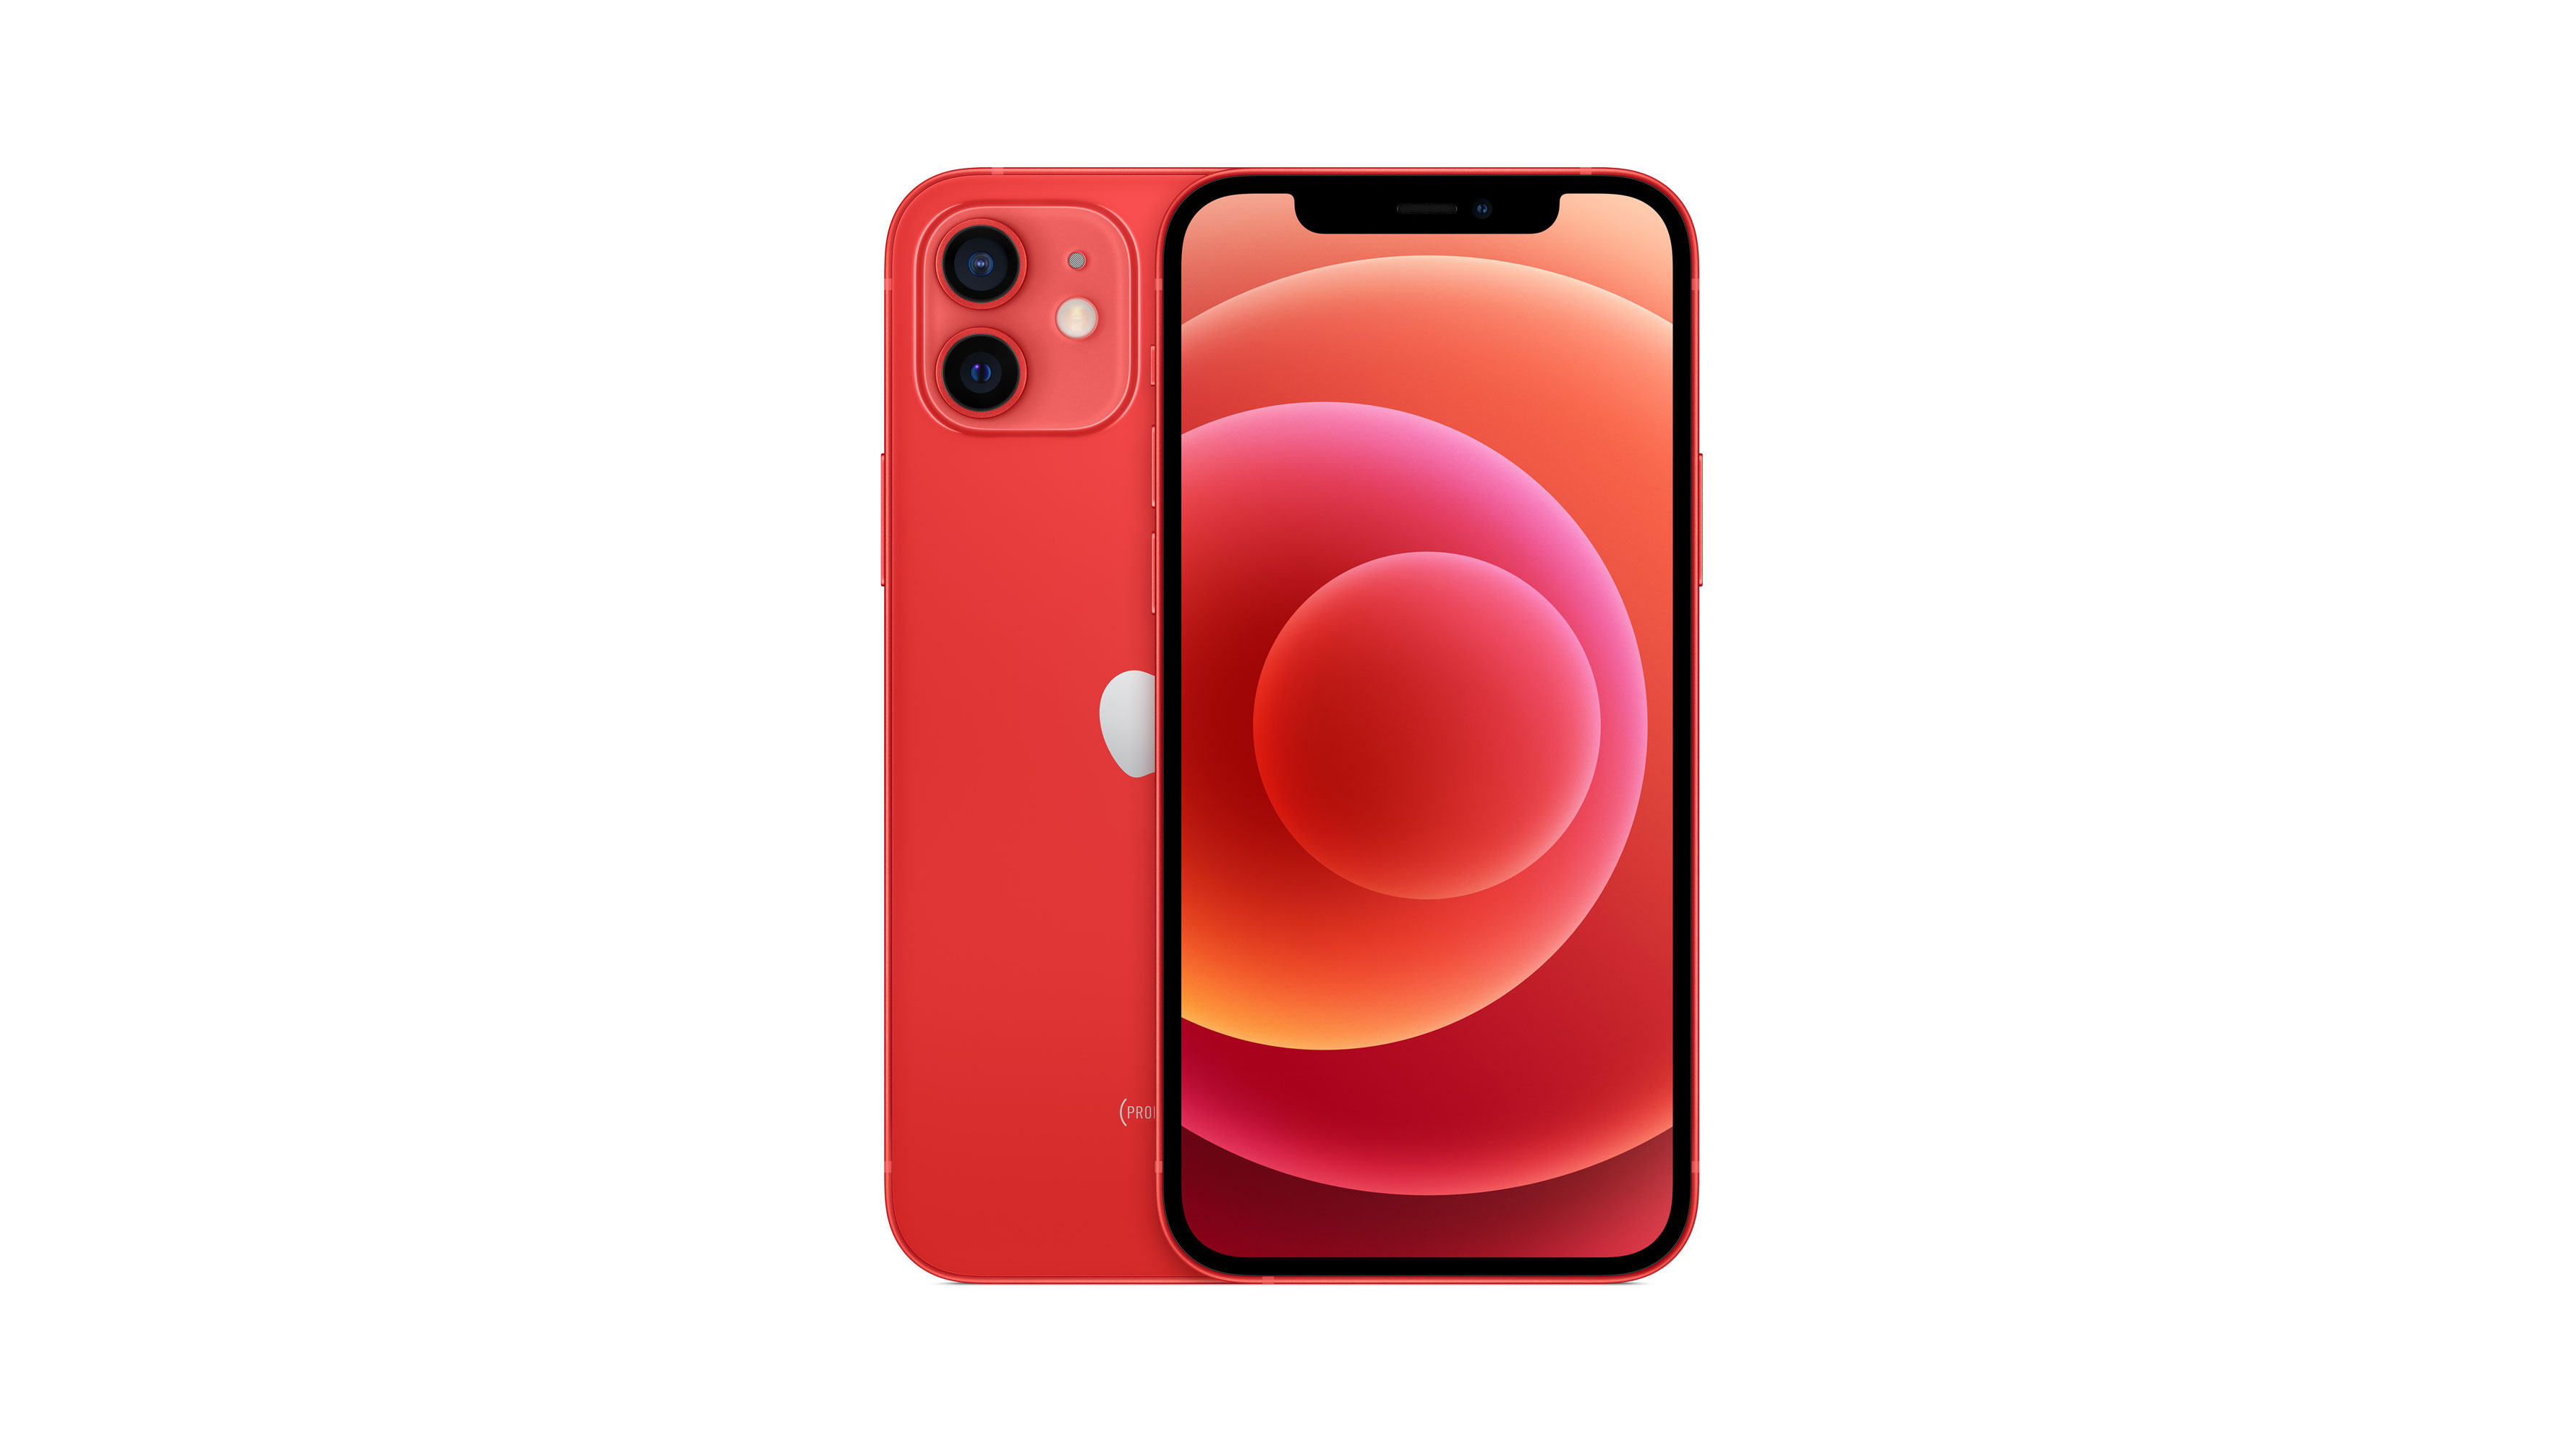 iPhone 12 in red